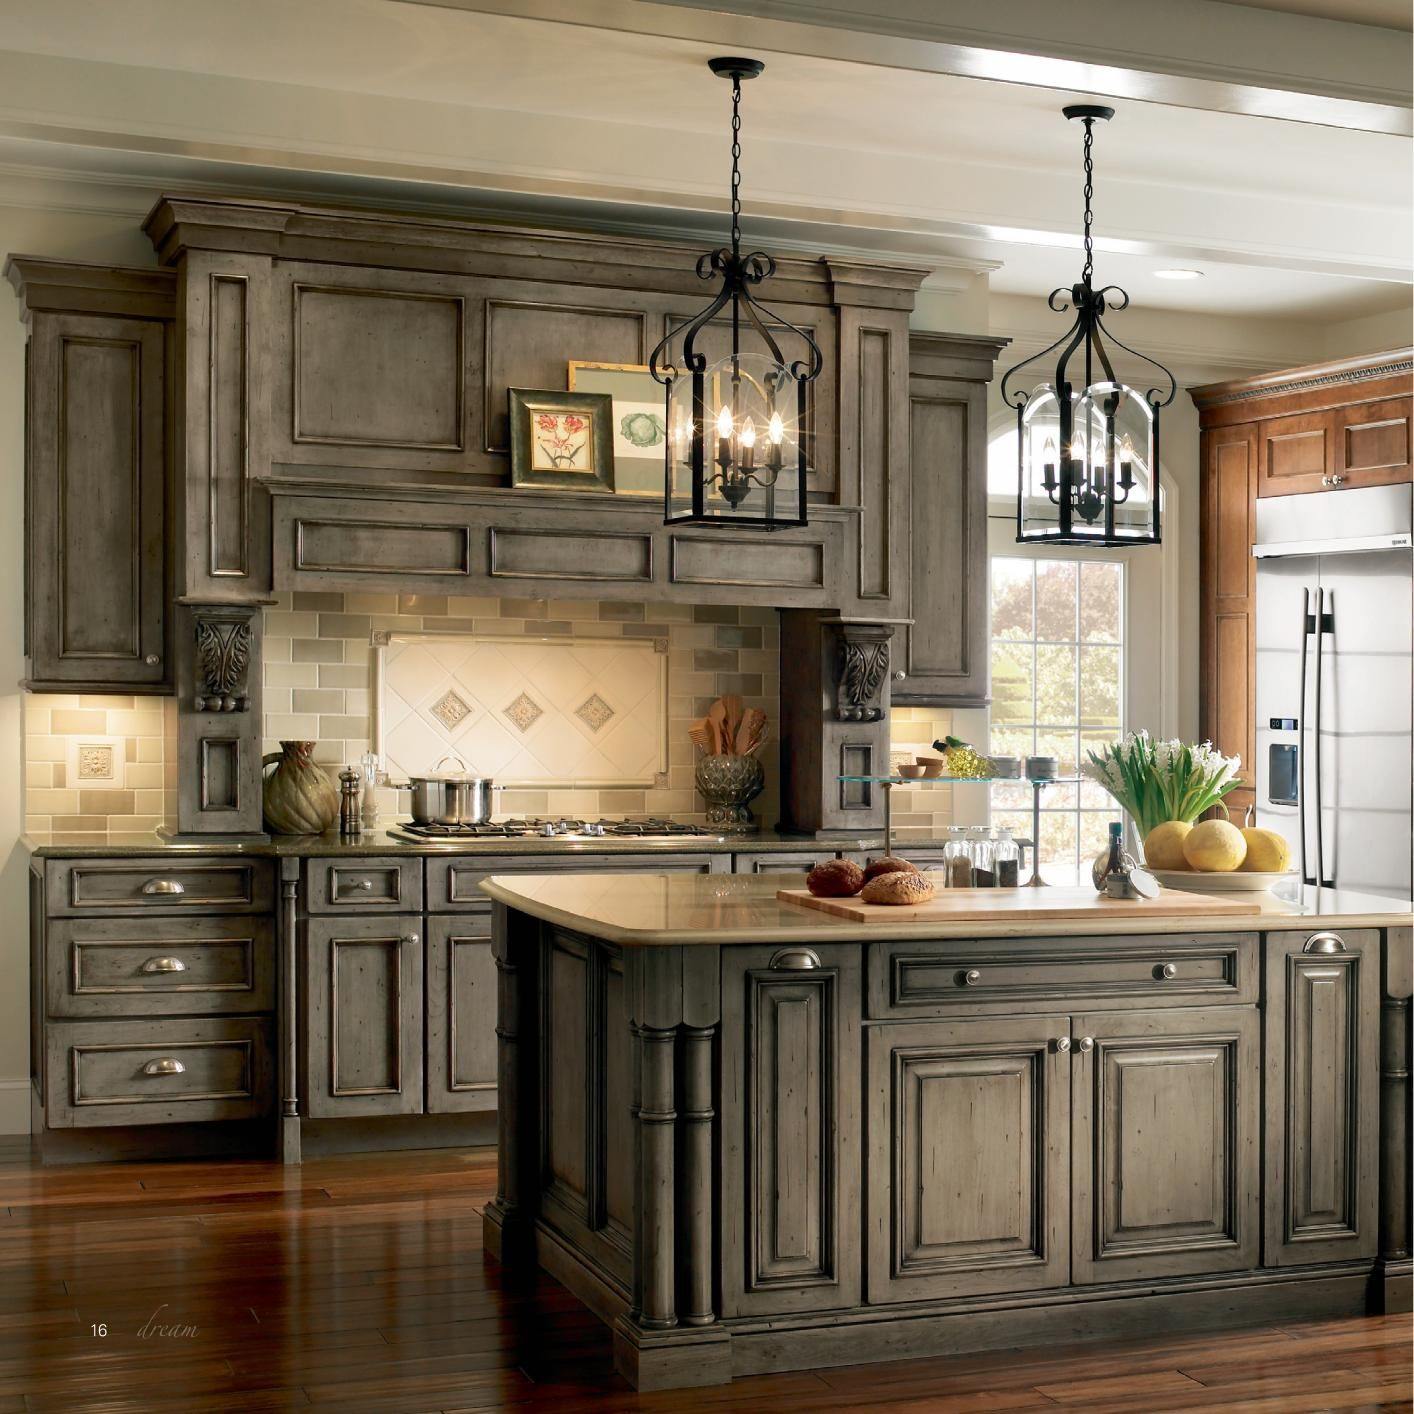 Medallion Kitchen Cabinets Wine Rack Island Cabinetry I Like The Color Main Floor Remodel